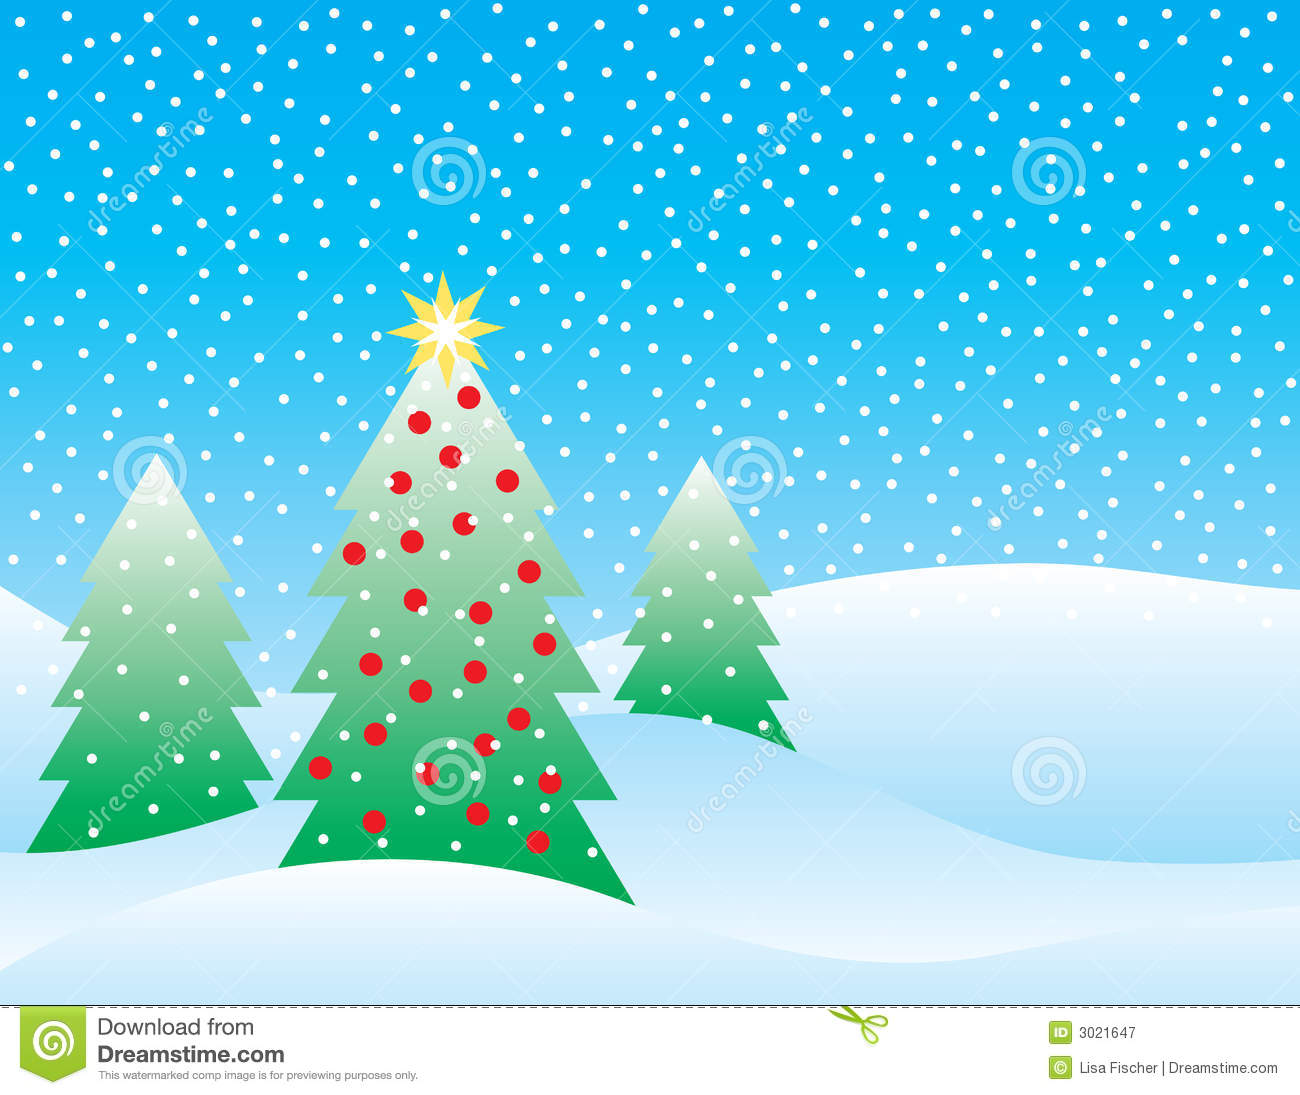 Stylized Illustration Of Three Christmas Trees On A Snowy Background